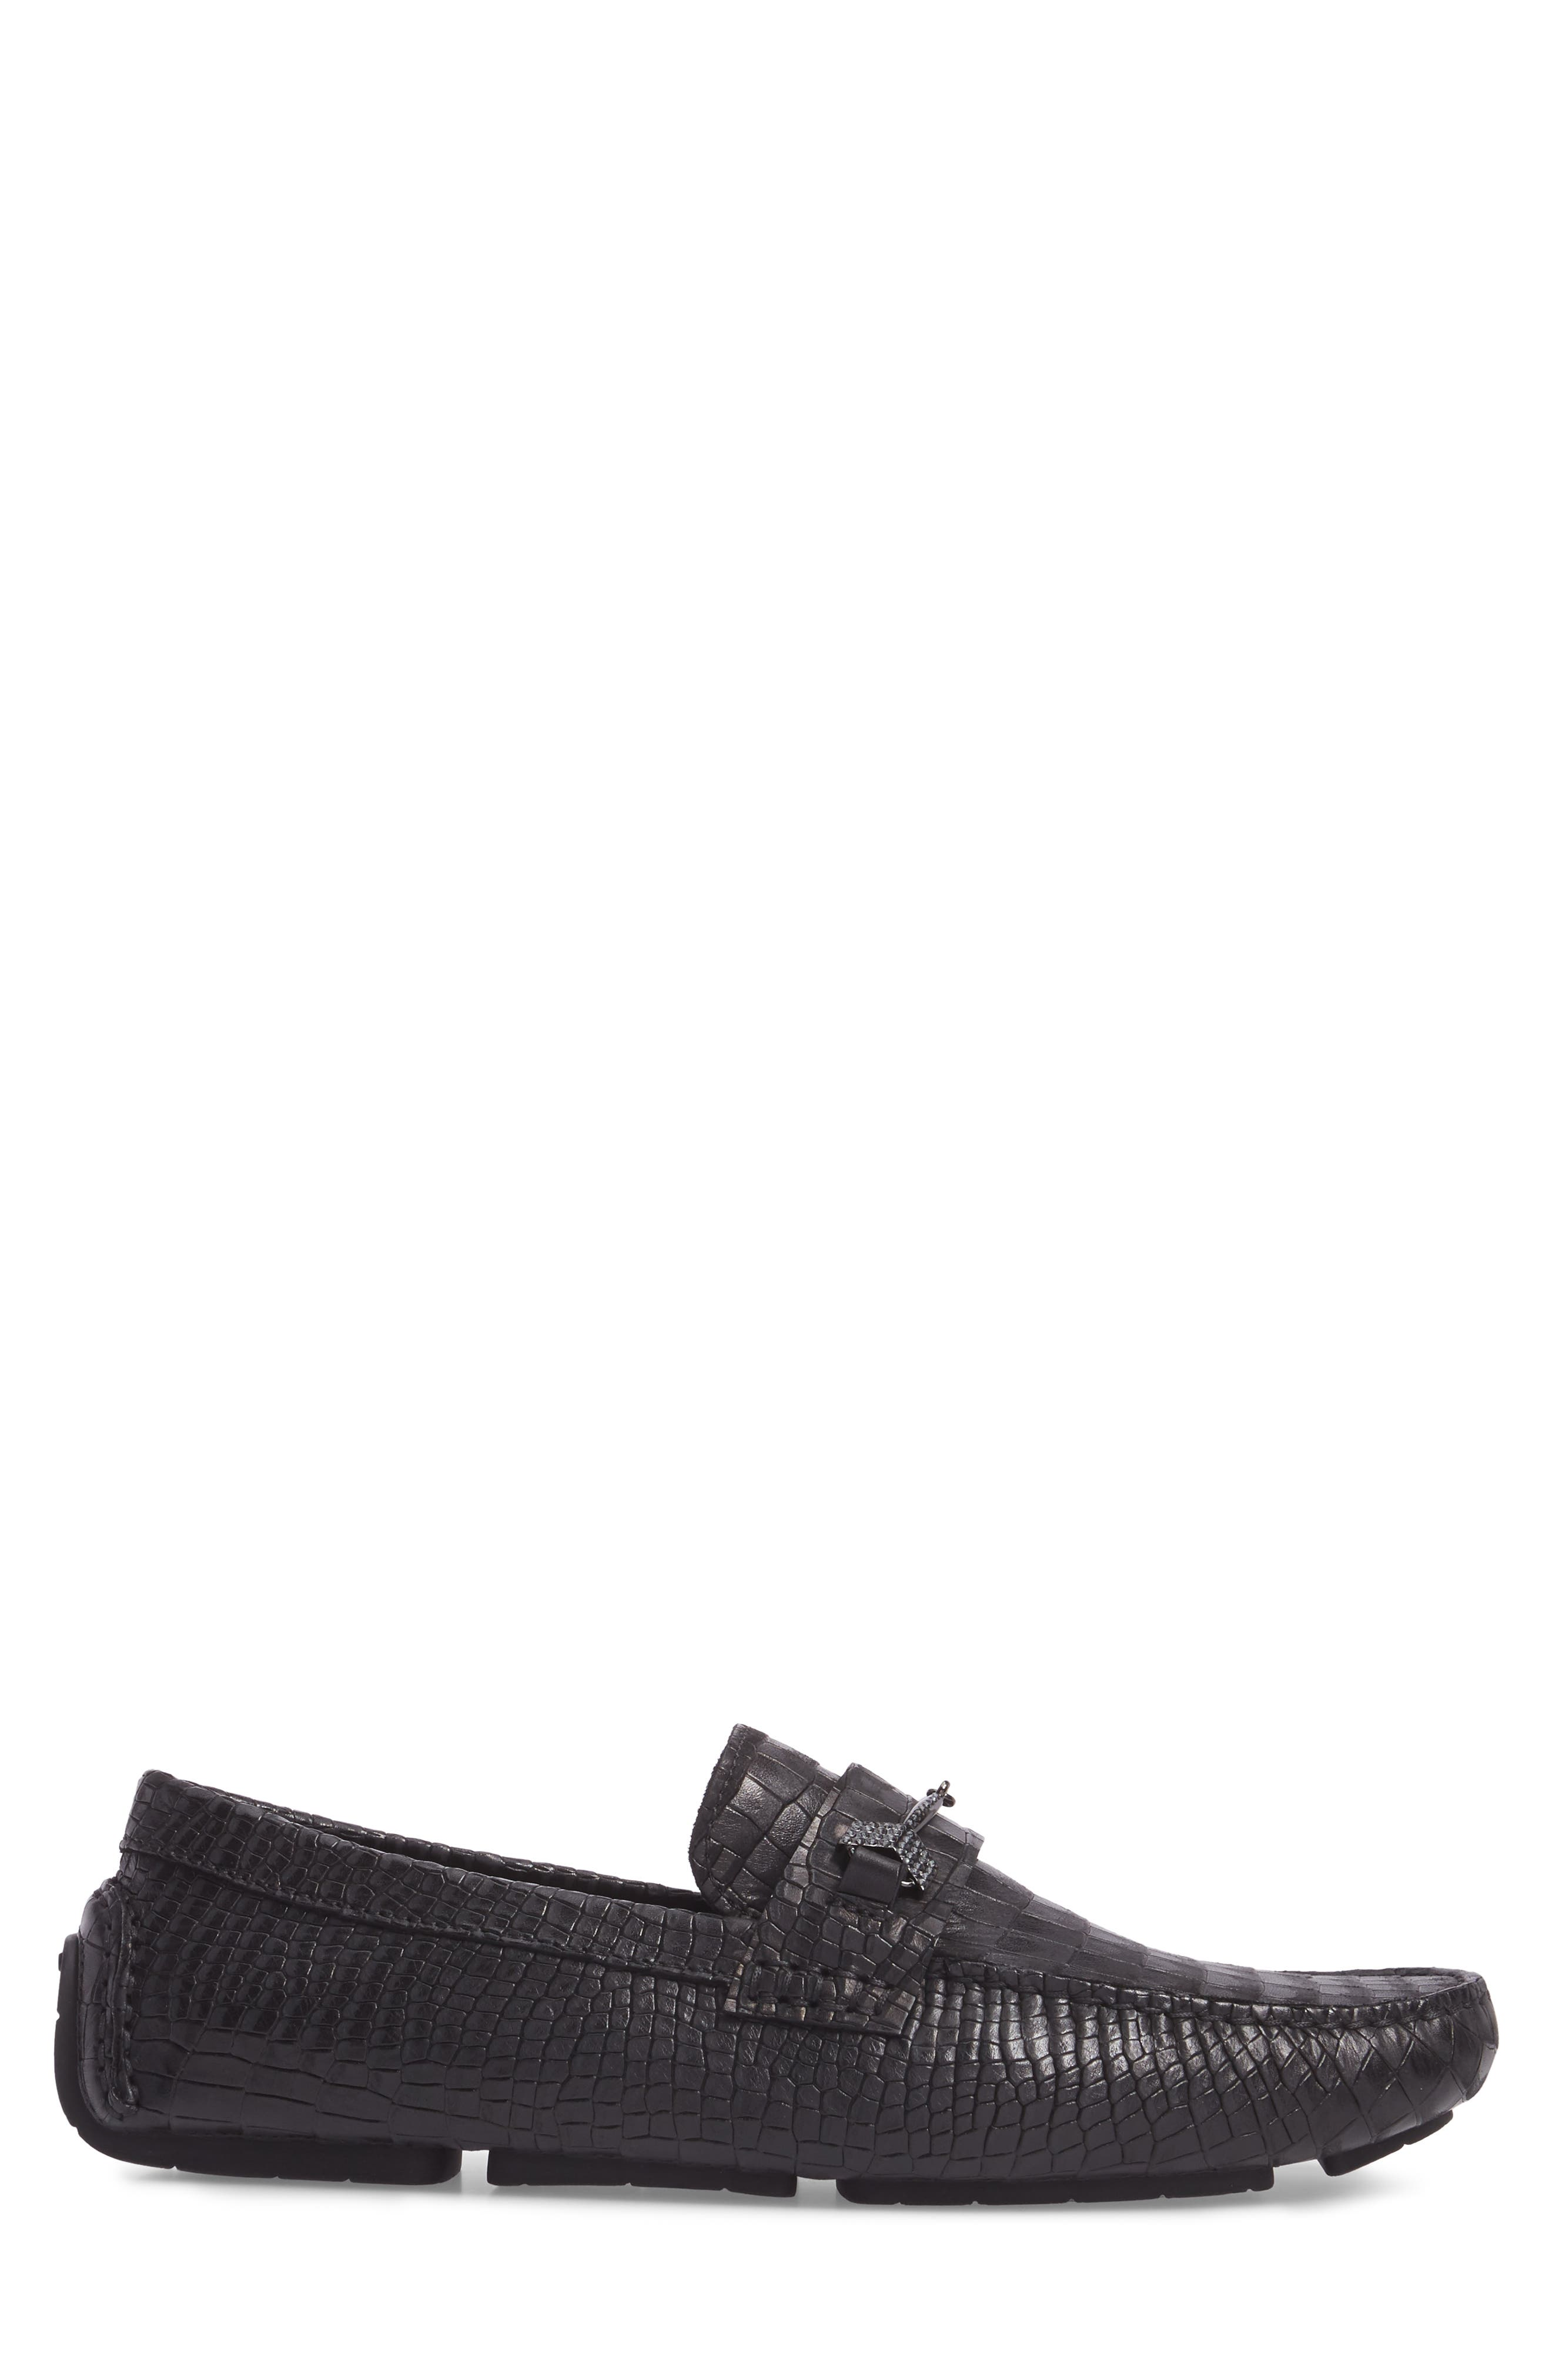 Brewer Croc Textured Driving Loafer,                             Alternate thumbnail 5, color,